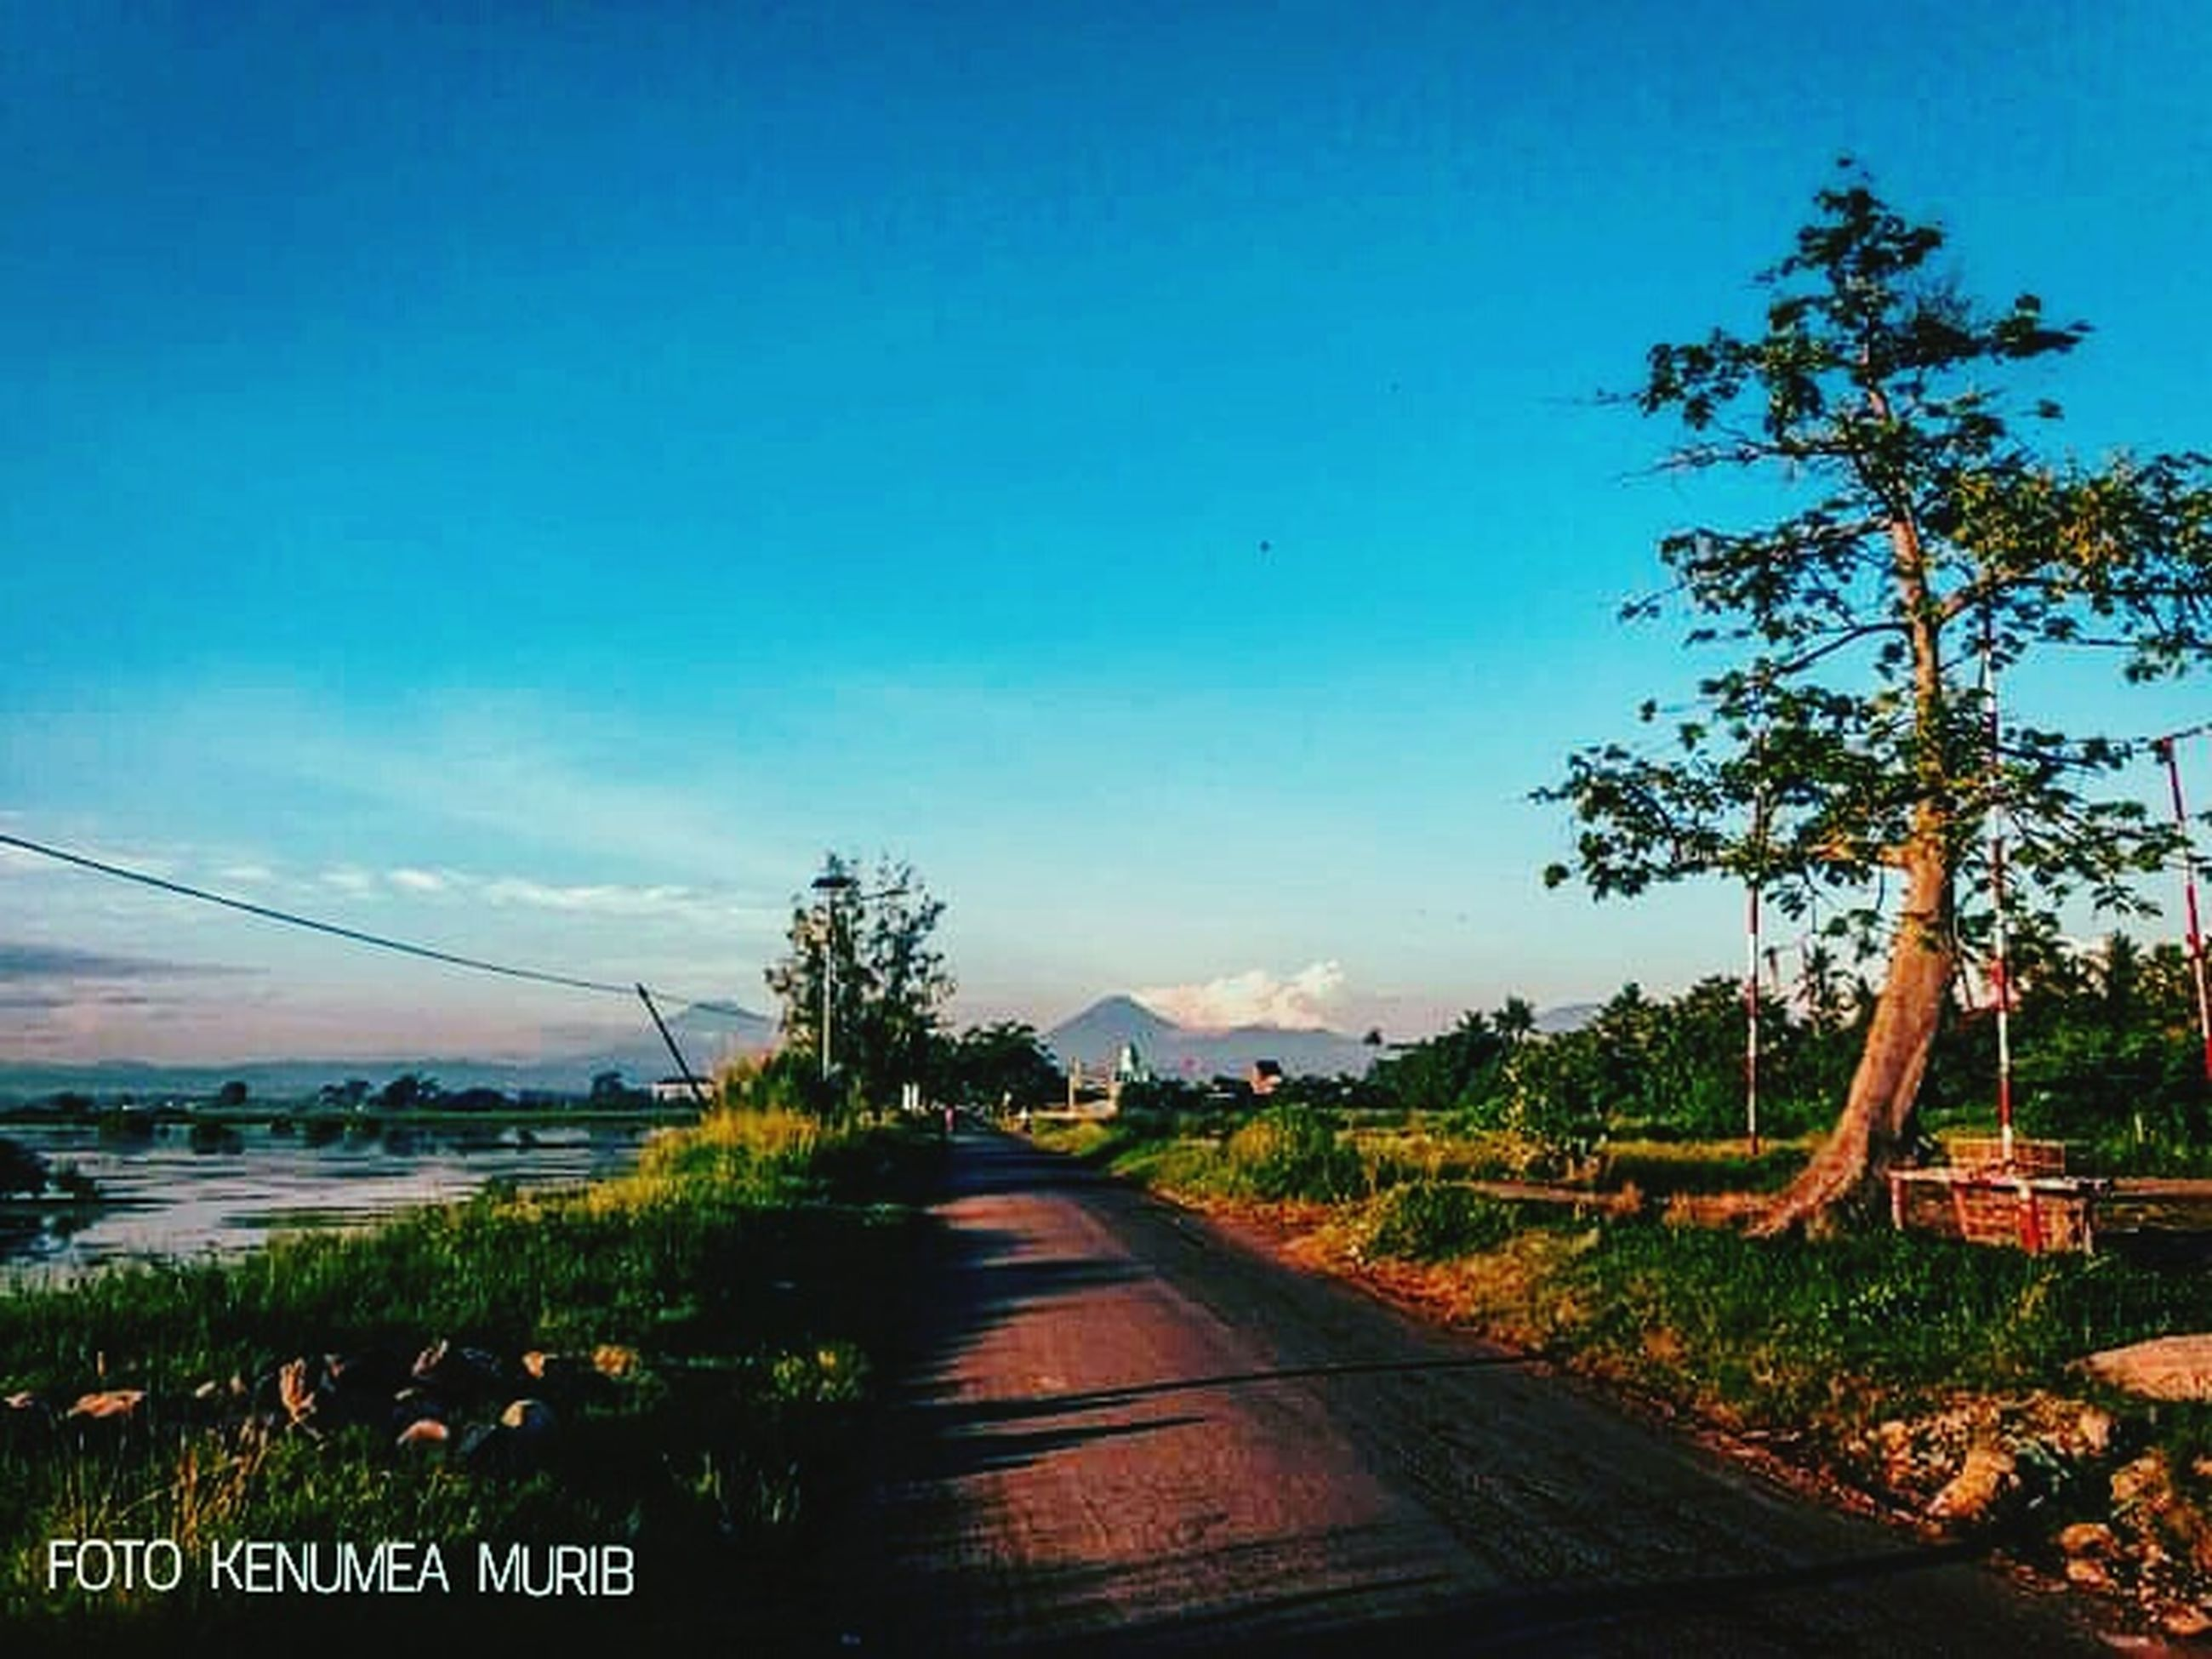 plant, sky, tree, direction, the way forward, nature, road, no people, growth, blue, transportation, beauty in nature, landscape, tranquility, land, field, day, tranquil scene, diminishing perspective, clear sky, outdoors